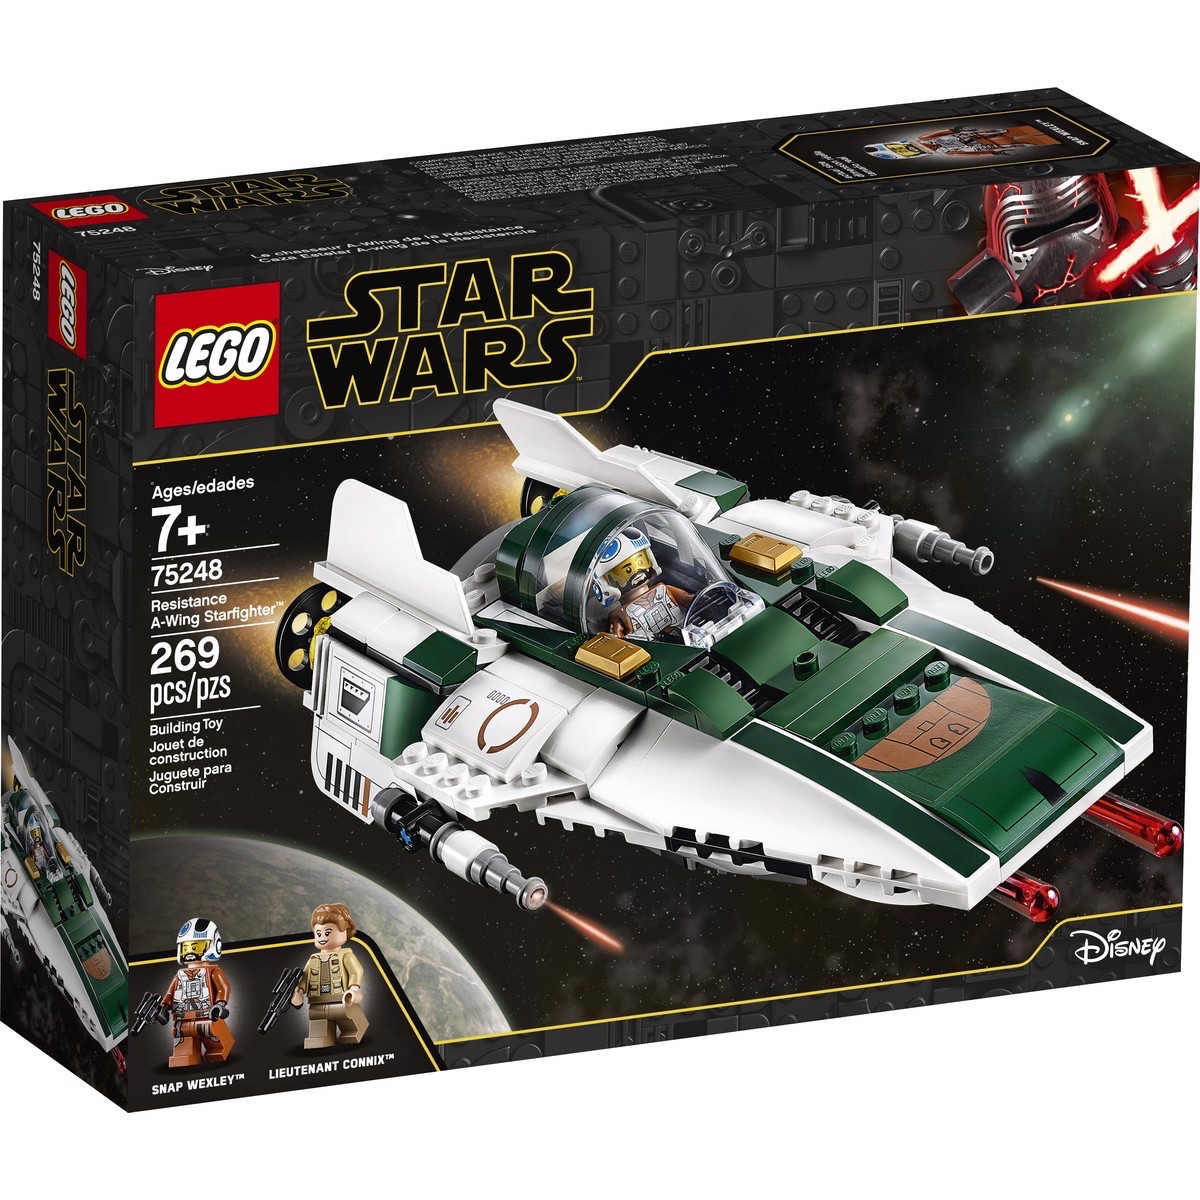 LEGO Star Wars 75248 Resistance A Wing Starfighter